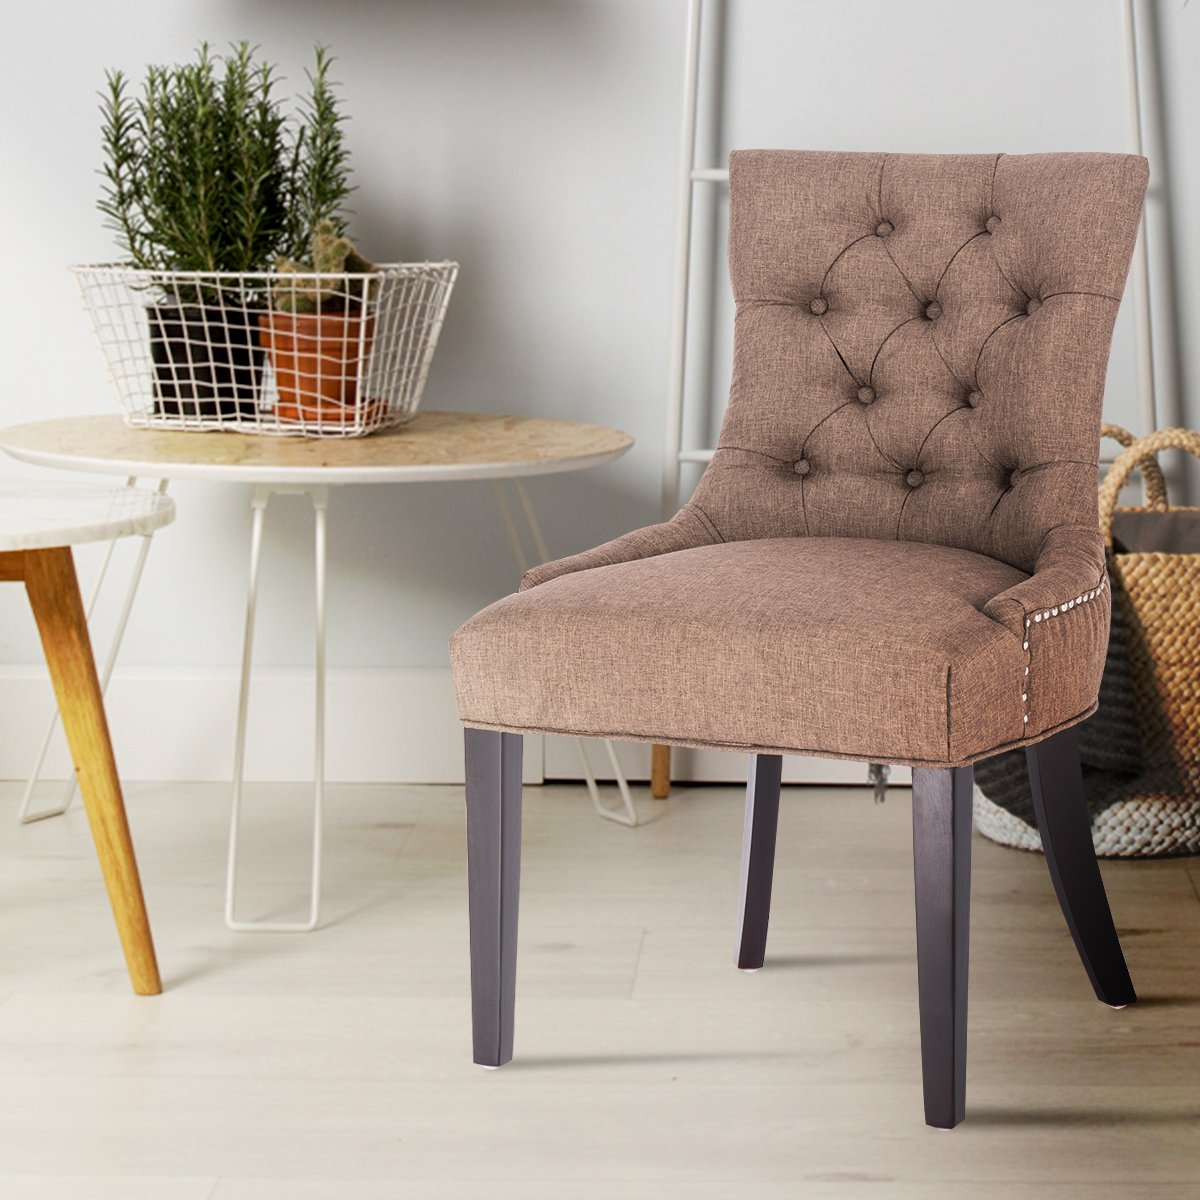 Giantex Fabric Dining Chair Button-Tufted Upholestered with Solid Wood Legs Brown